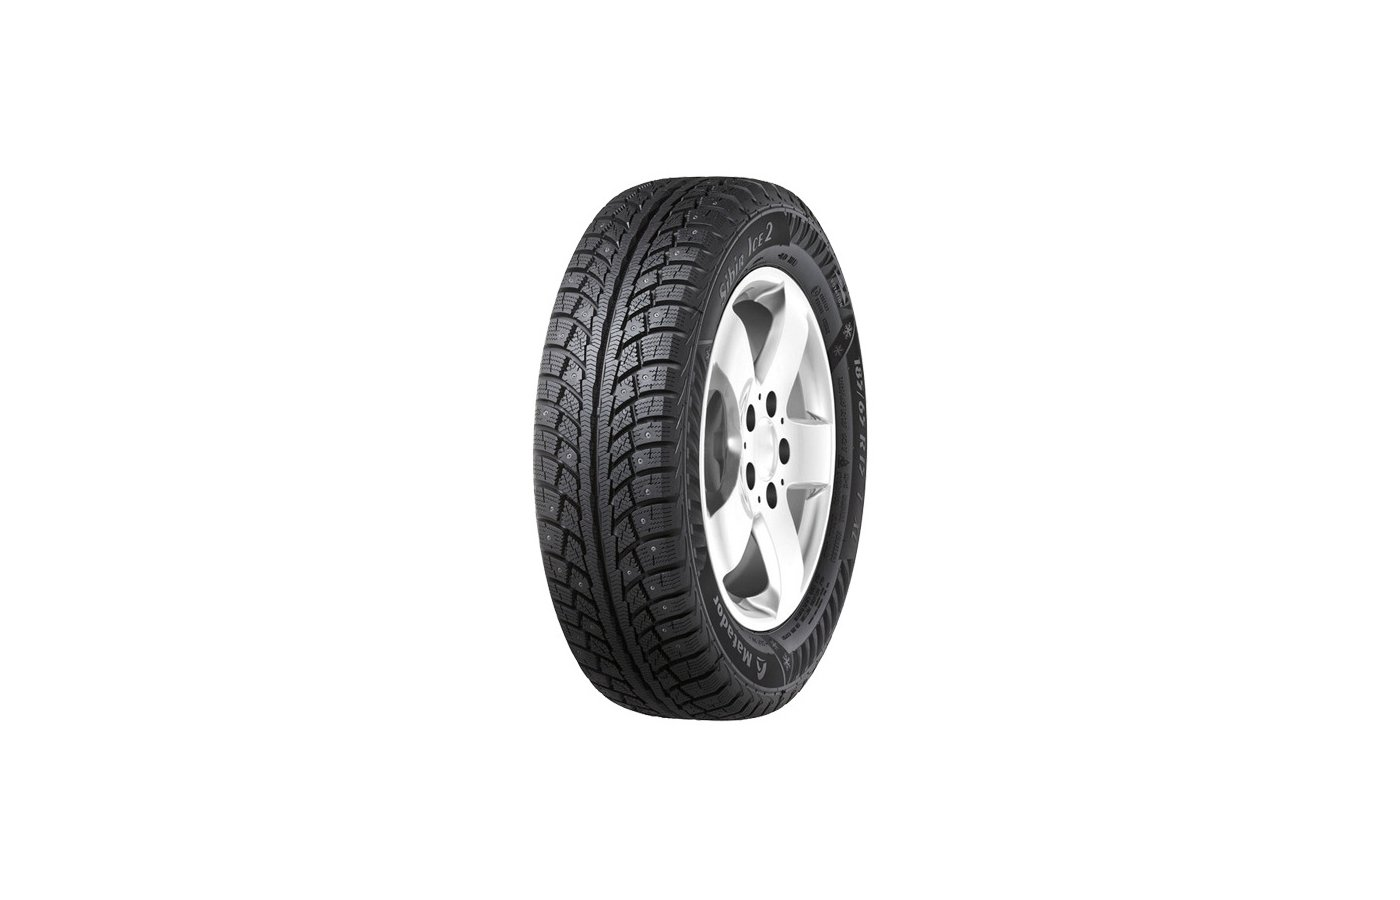 Шина Matador MP 30 Sibir Ice 2 205/60 R16 TL 96T XL шип